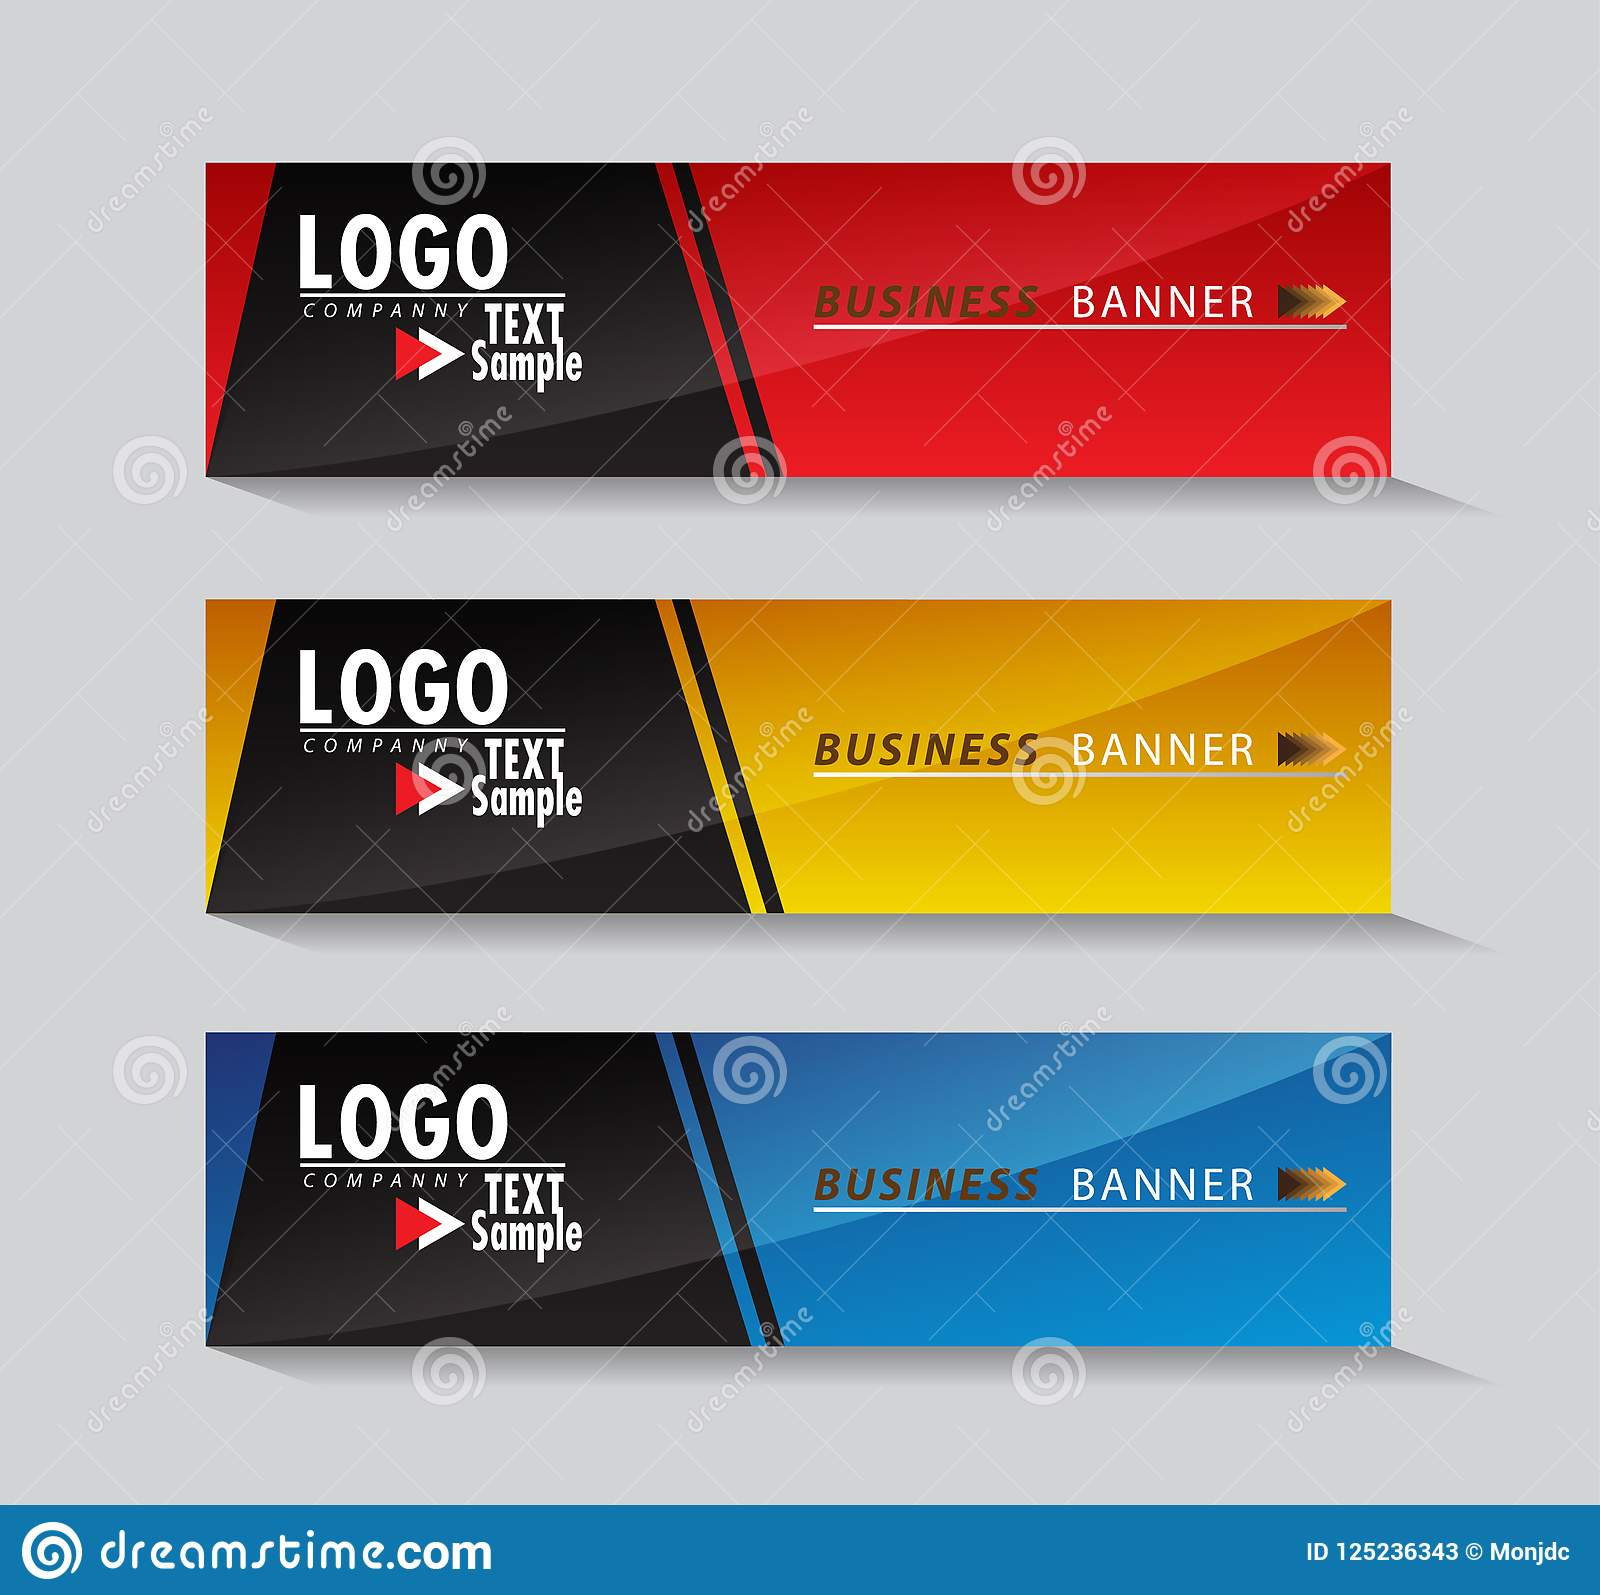 Abstract Web Banner Design Background Templates Stock ...